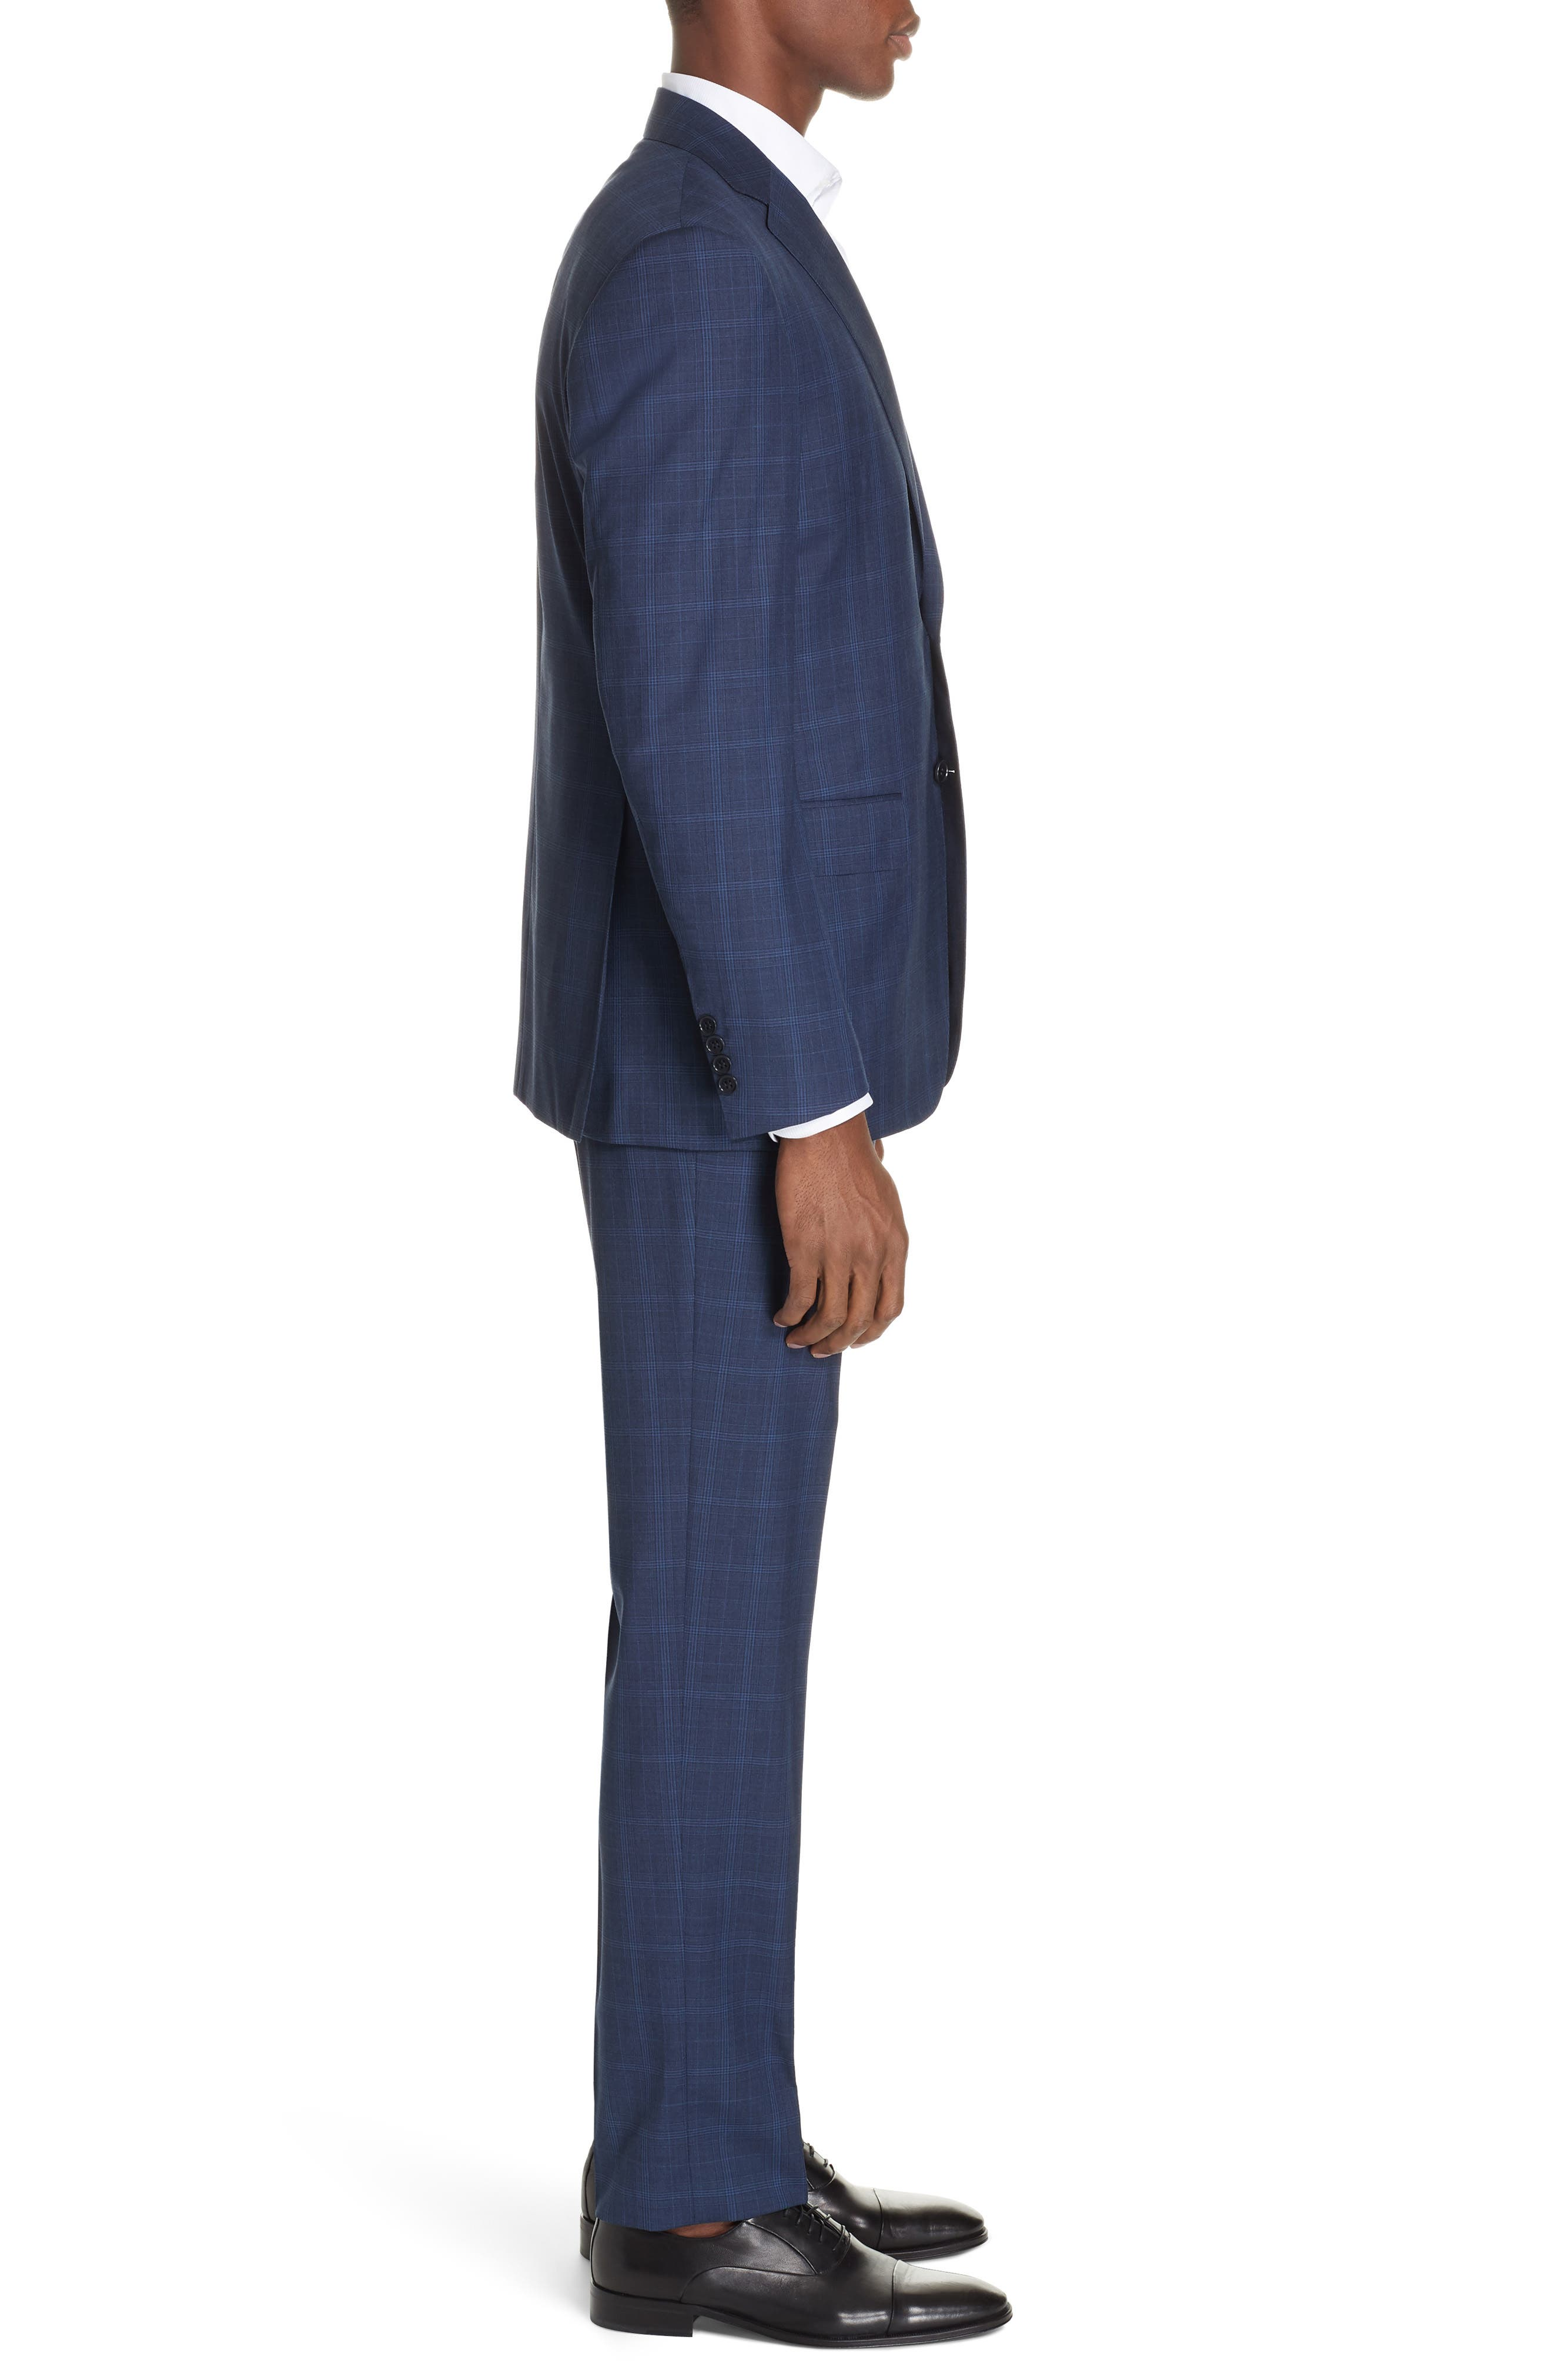 CANALI, Sienna Classic Fit Plaid Wool Suit, Alternate thumbnail 3, color, NAVY